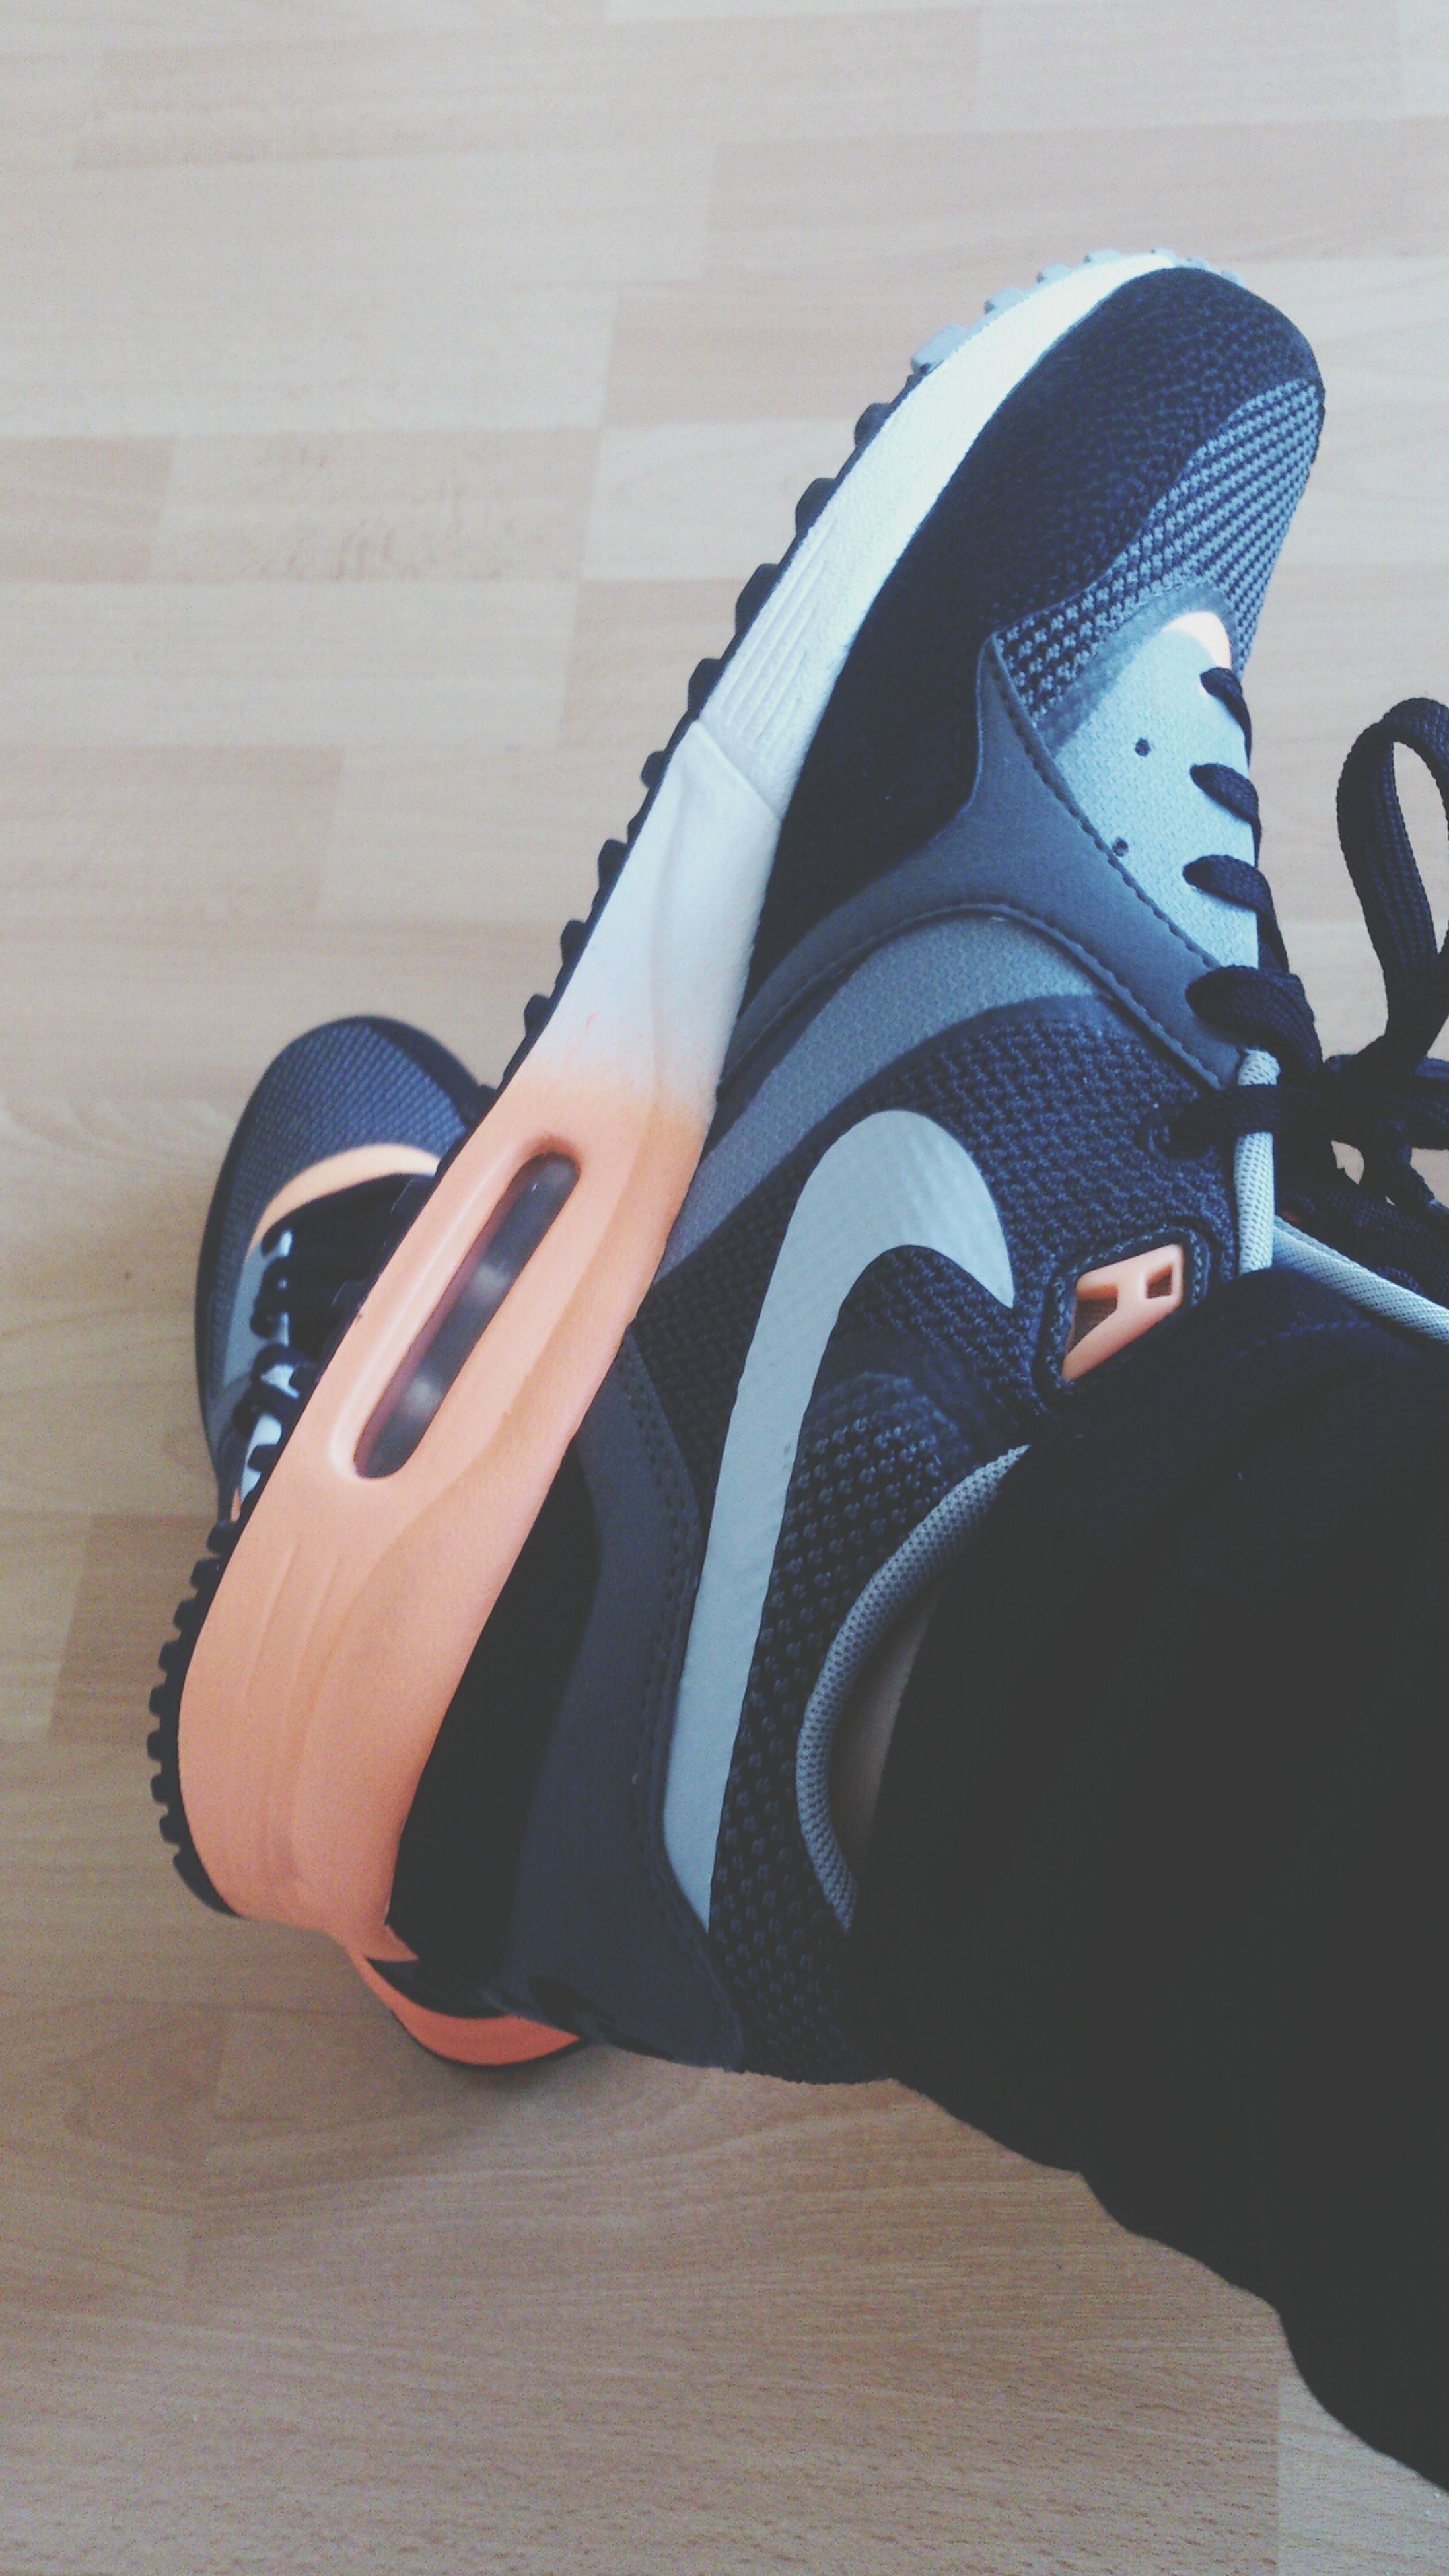 shoe, low section, lifestyles, person, leisure activity, jeans, high angle view, relaxation, footwear, sitting, casual clothing, personal perspective, men, standing, close-up, day, indoors